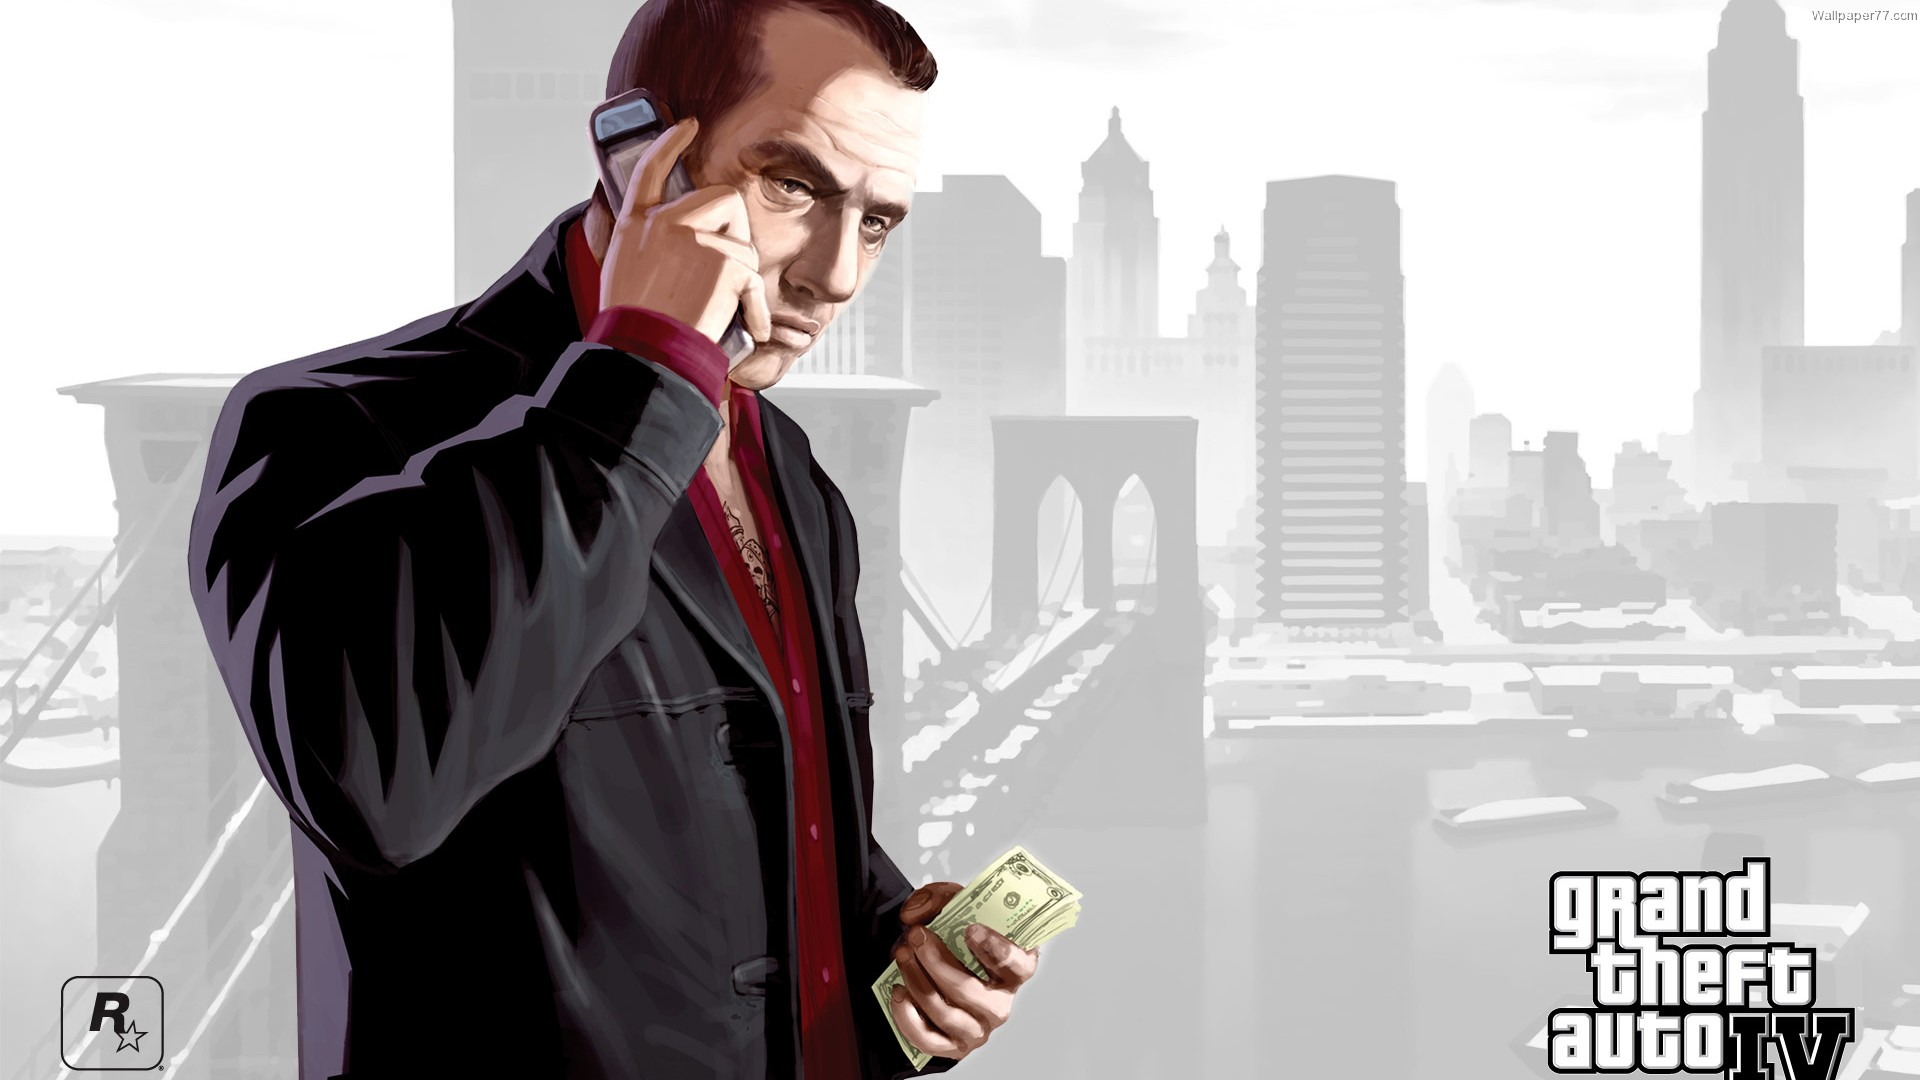 Grand Theft Auto Wallpaper 1920×1080